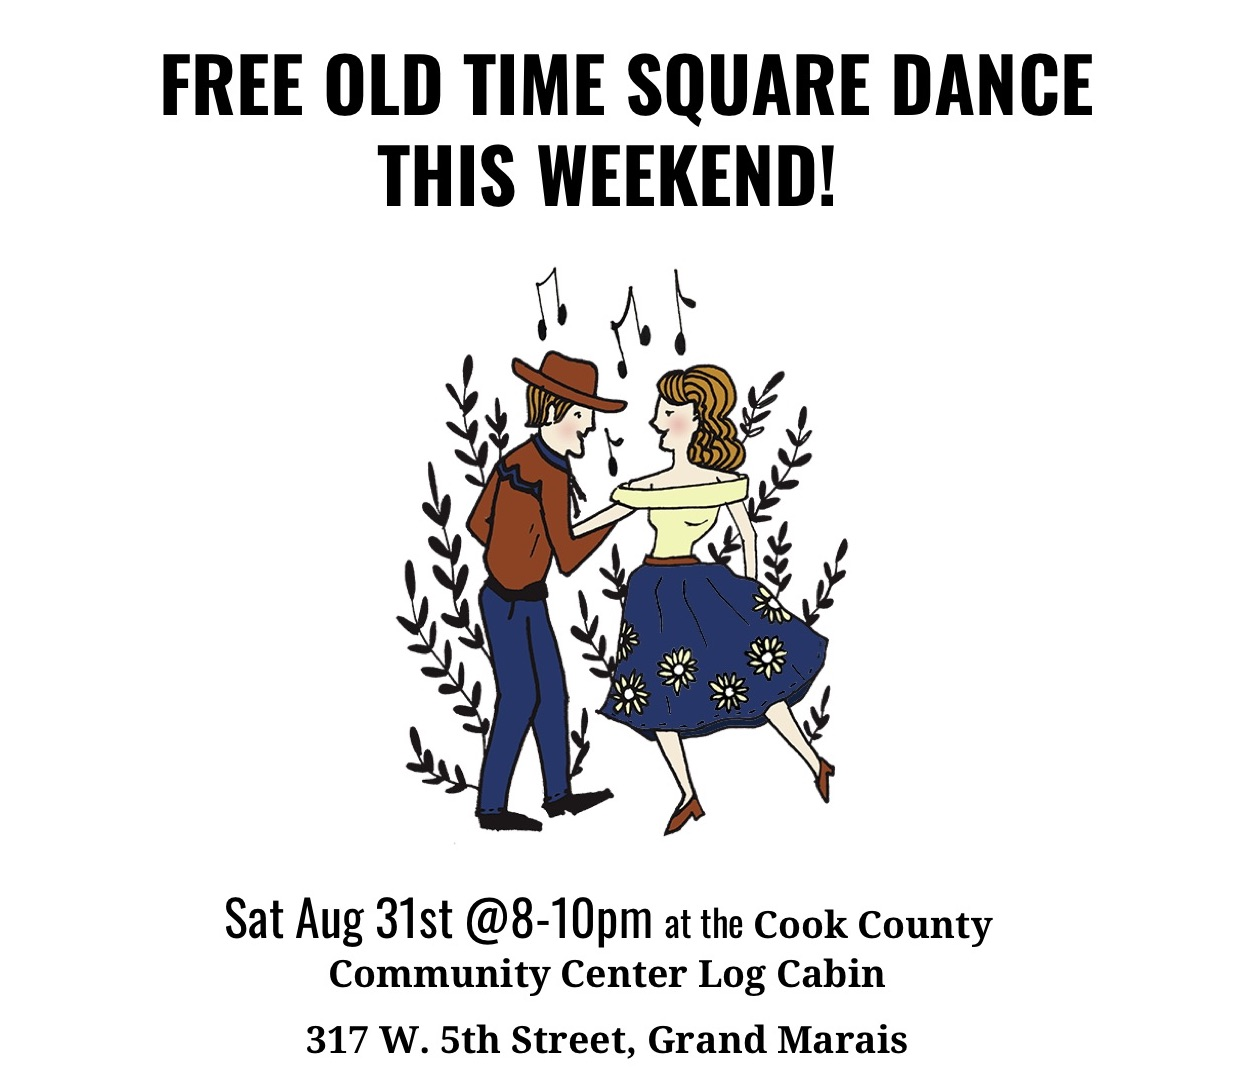 A Community Square Dance will be held in the Log Building at the Community Center starting at 8 p.m.